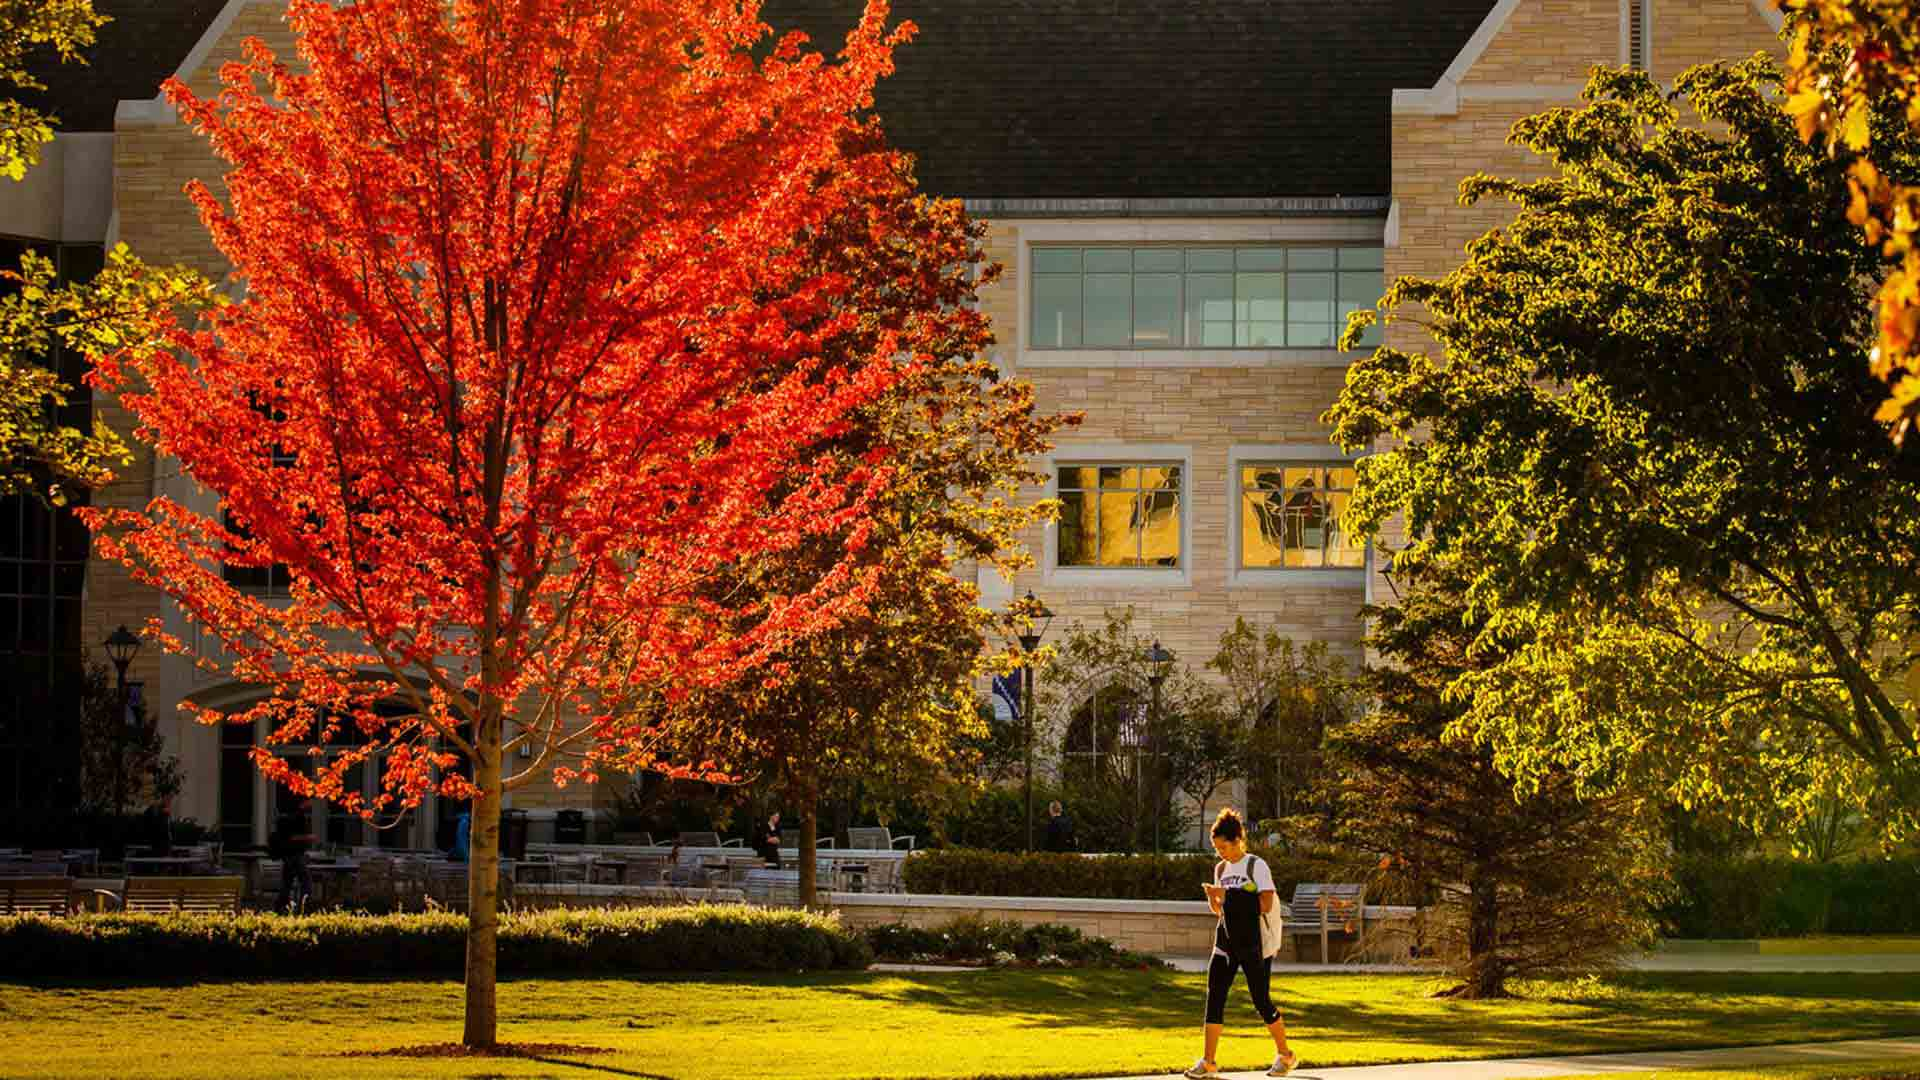 A student walks along a path in front of colorful trees and the Anderson Student Center.